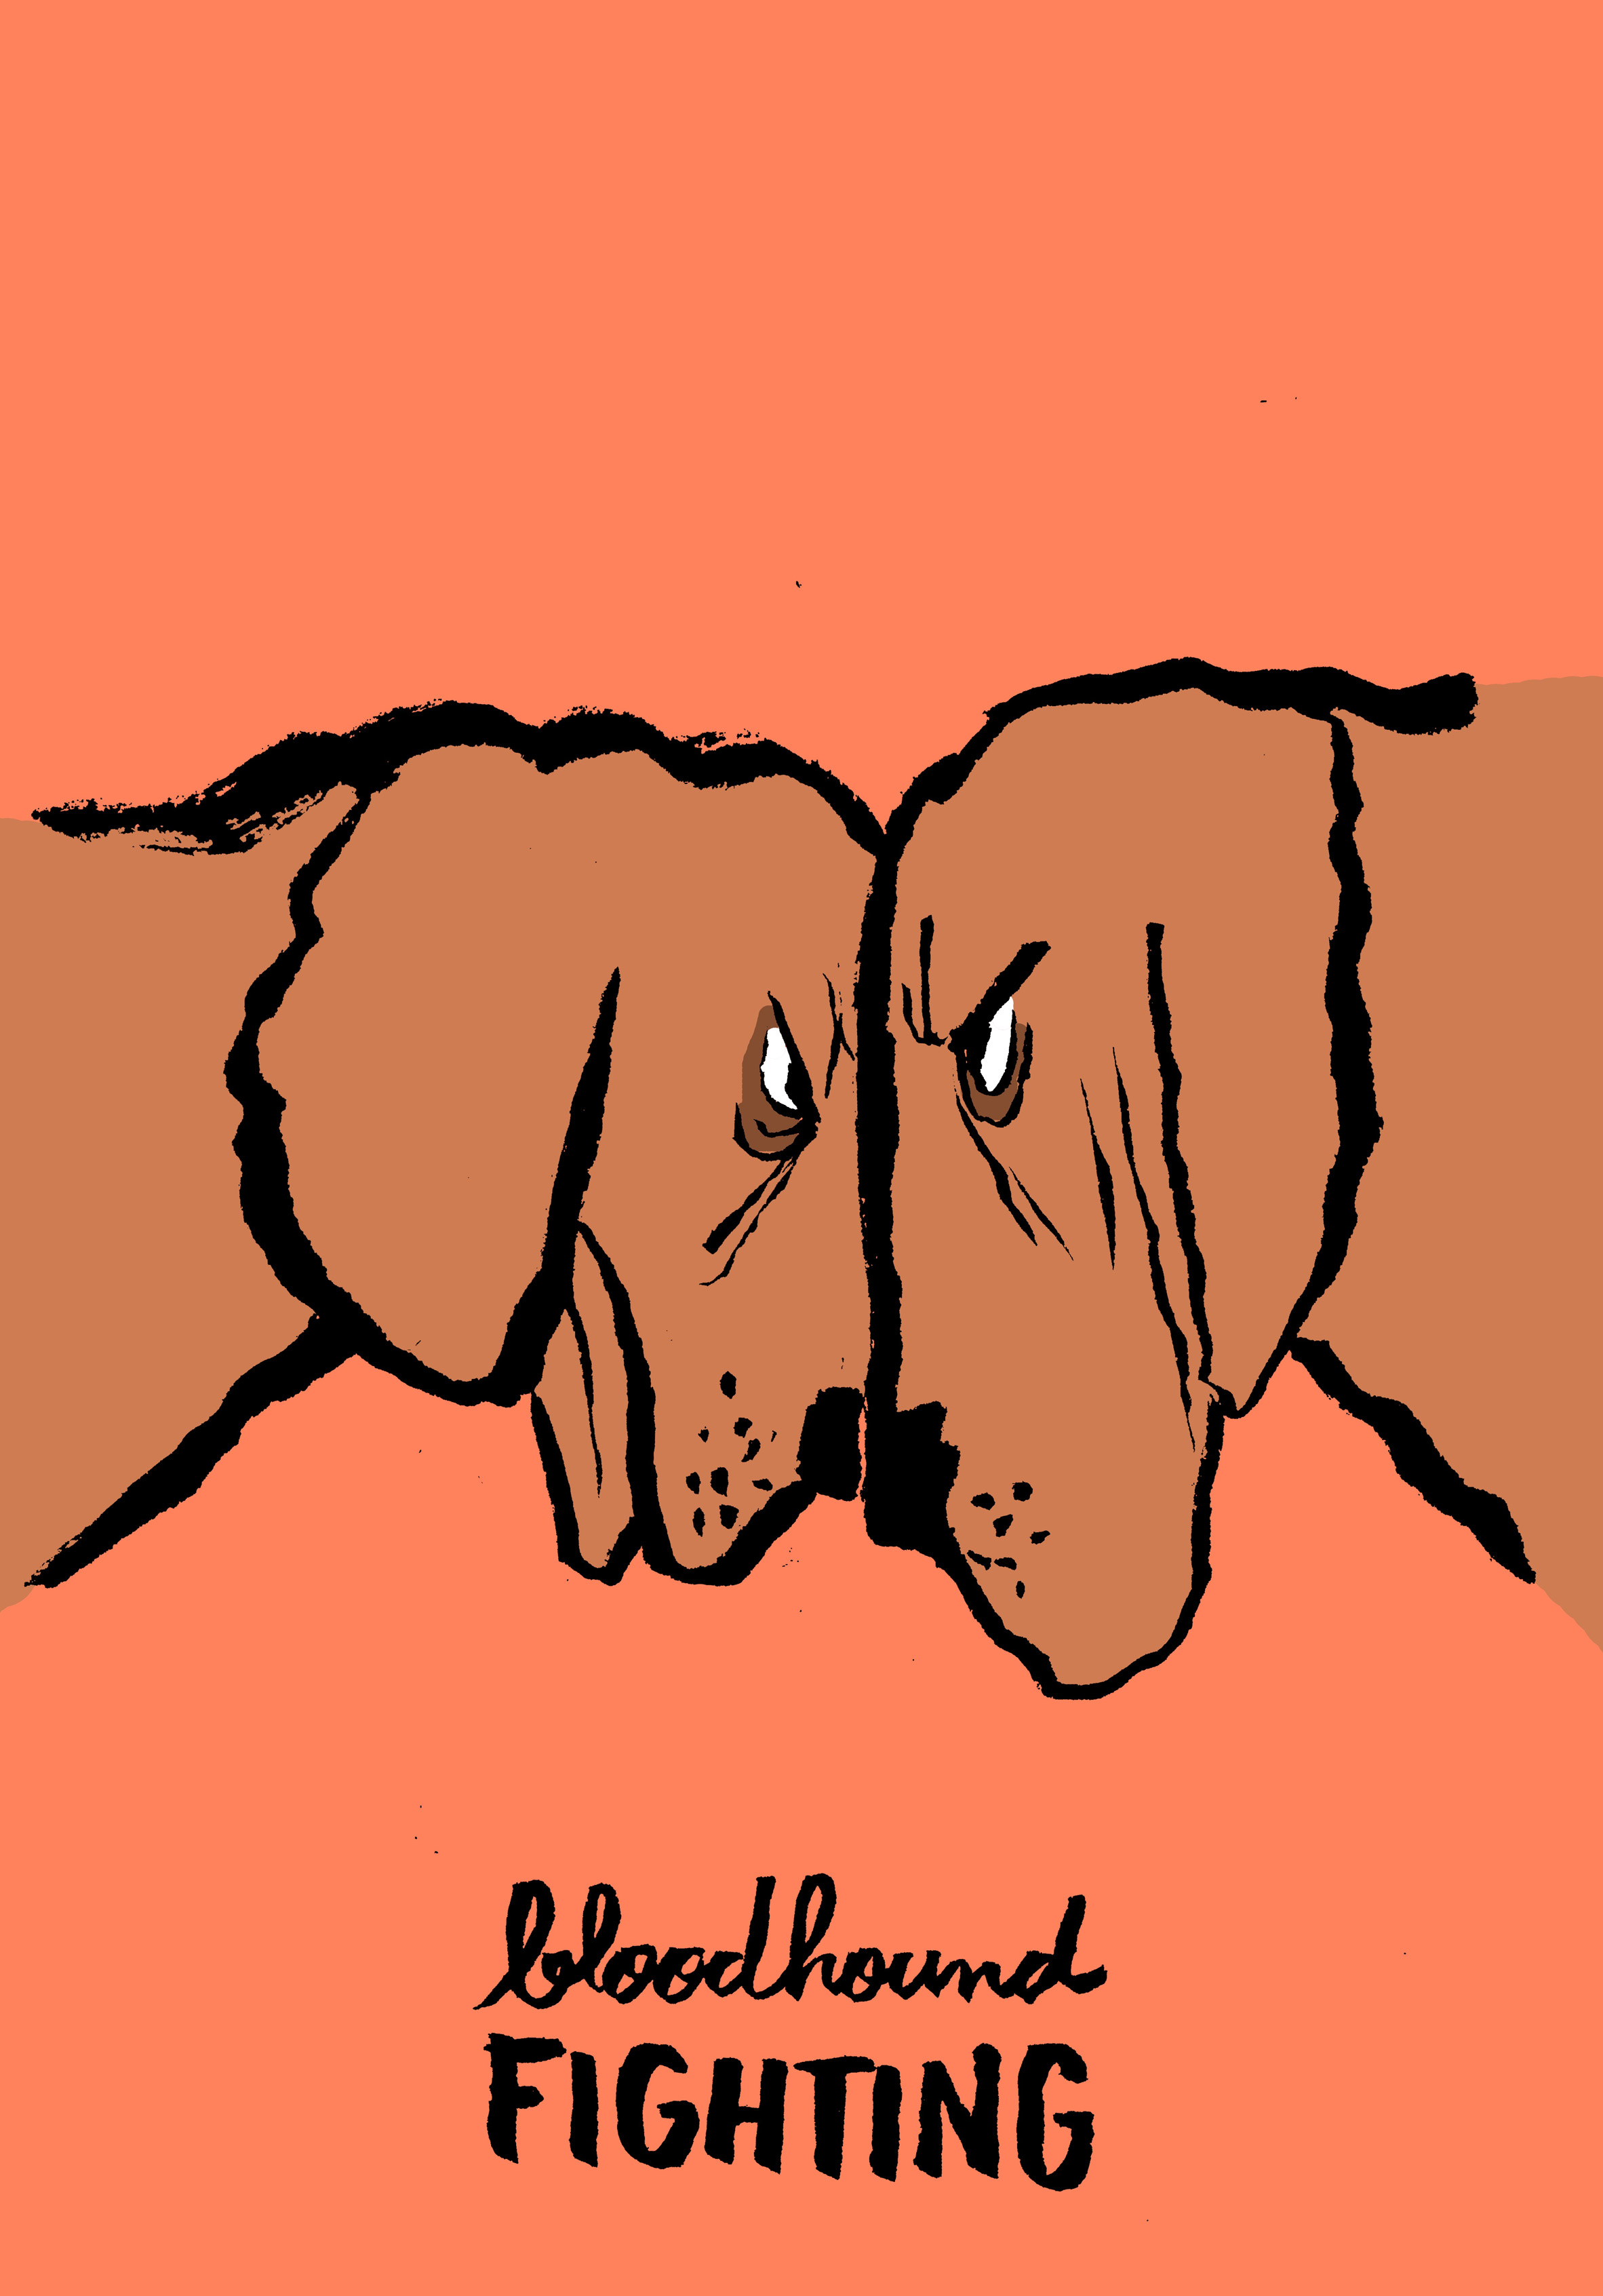 Jean Jullien illustrates card game with playful dogs